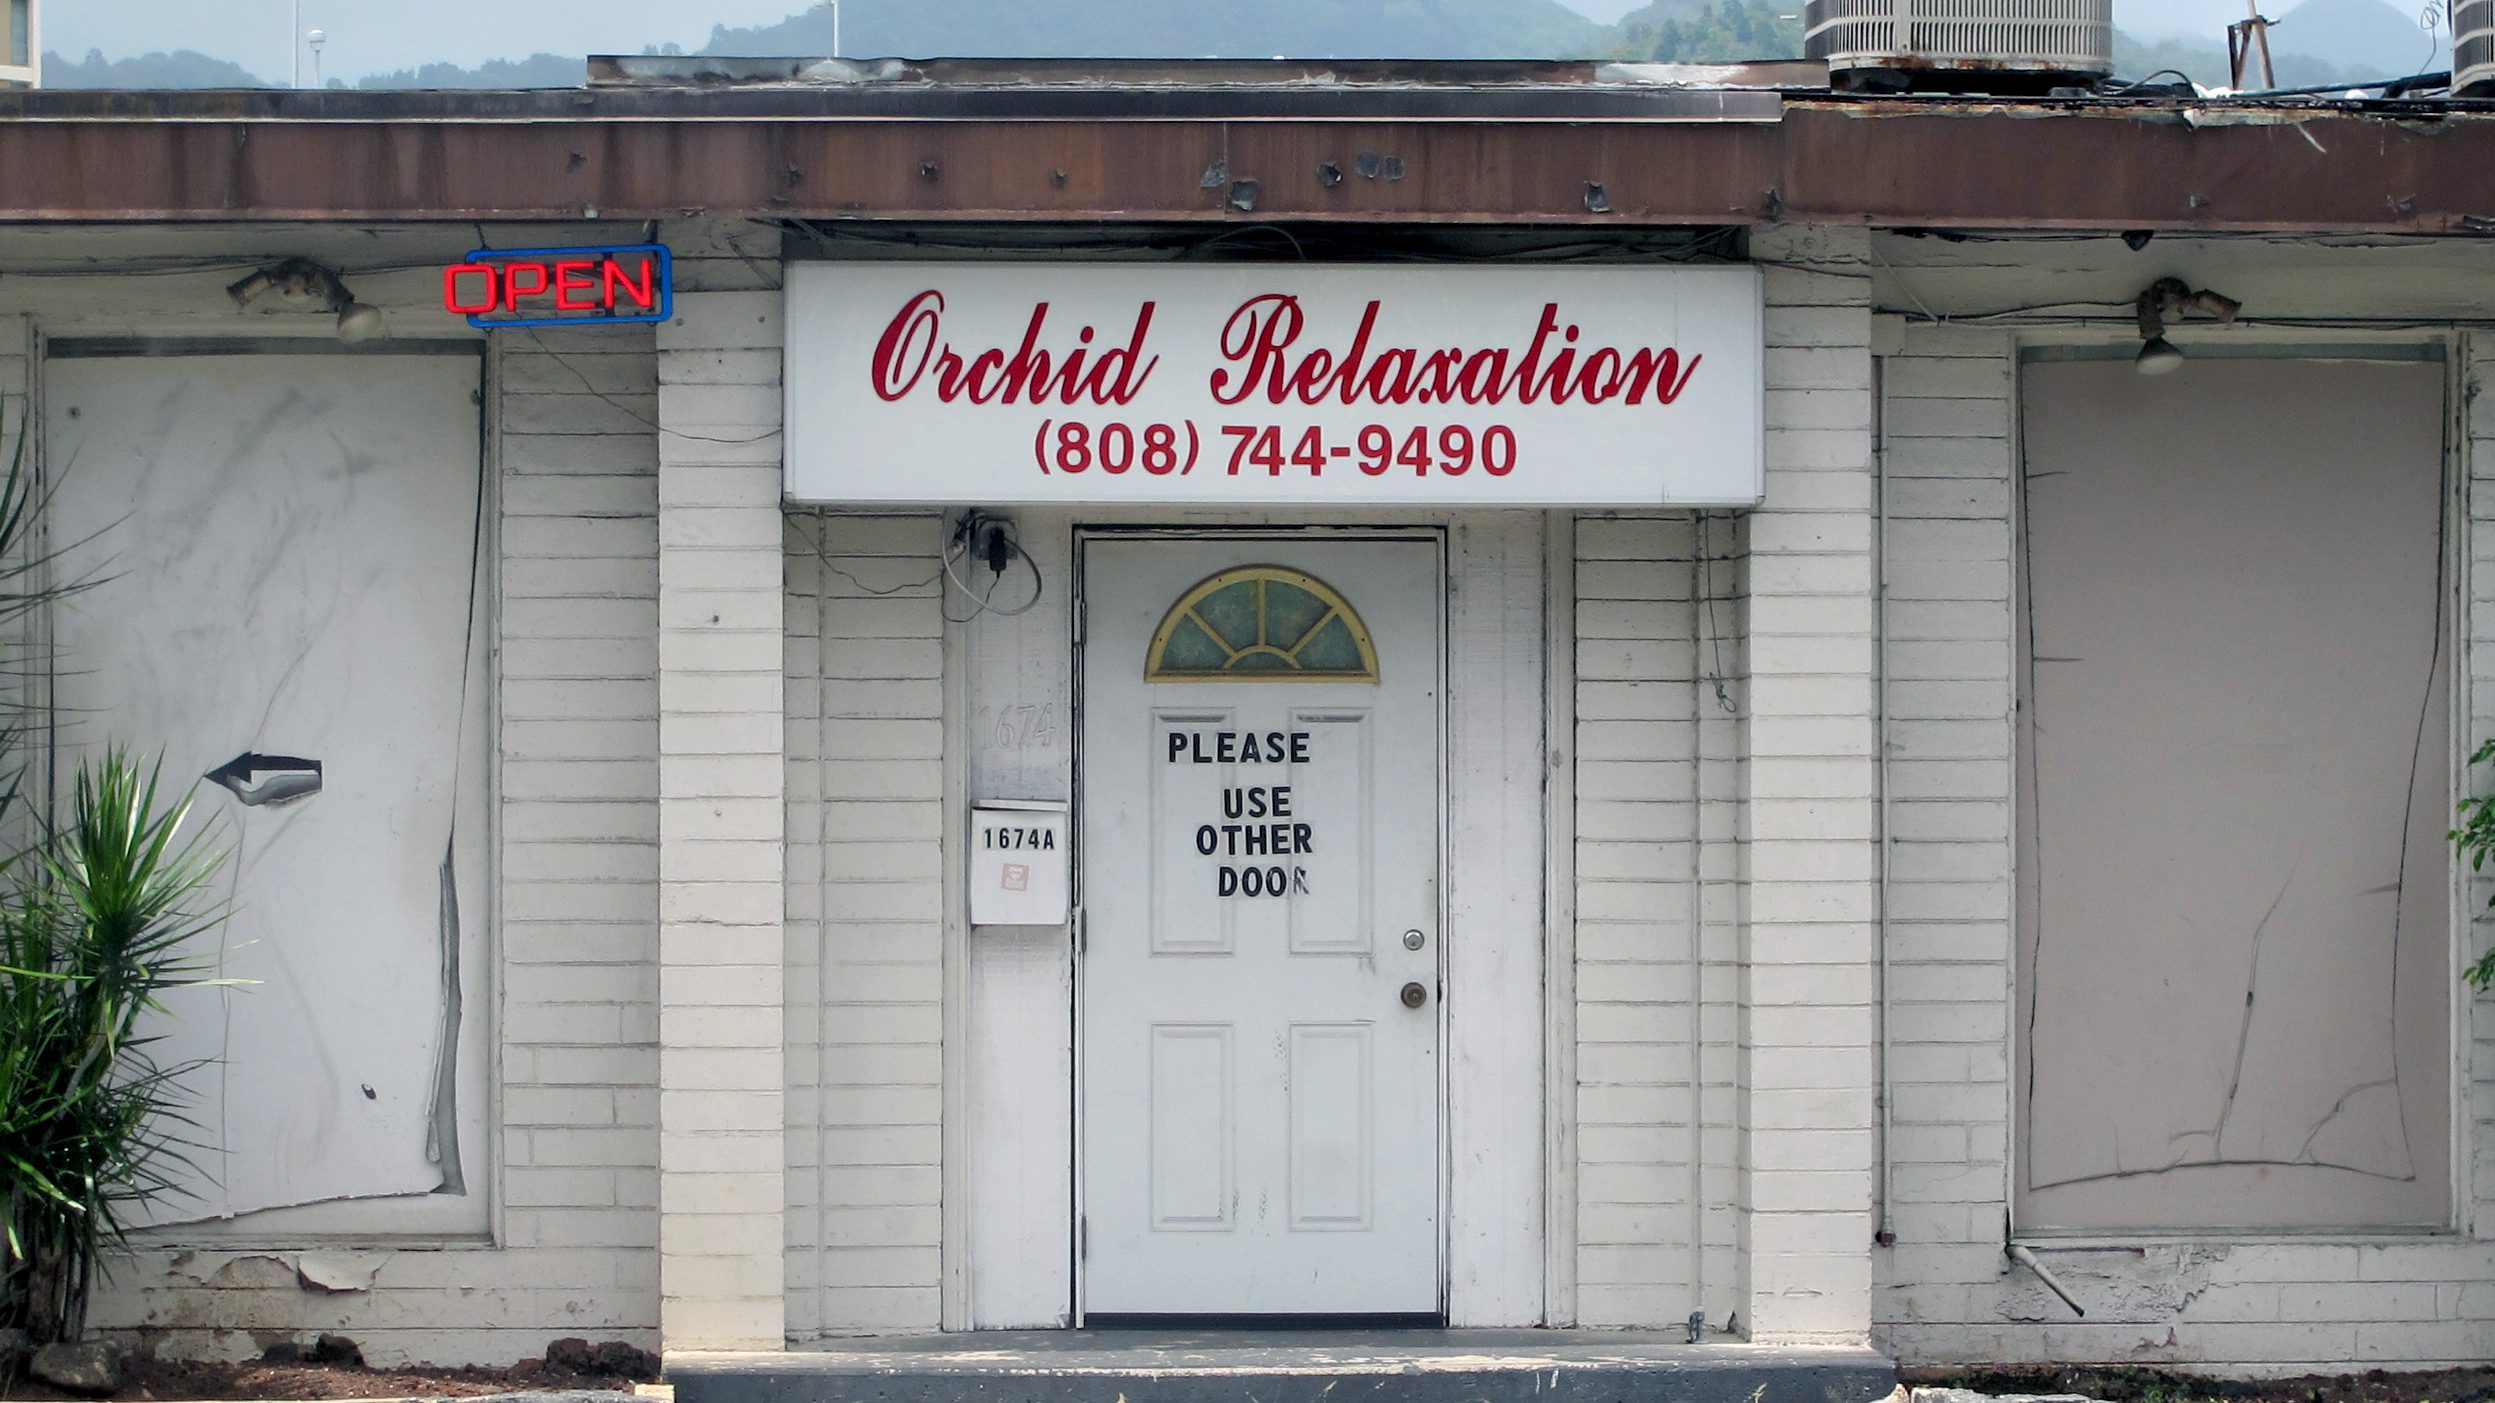 An open sign hangs outside Orchid Relaxation in Honolulu, Wednesday, May 6, 2015. The massage parlor was one of several local businesses that were targeted in a police prostitution sting over the weekend. Officers used an unusual tactic charging the women with sexual abuse, a more serious crime, according to legal experts and advocates for prostitutes. (AP Photo/Jennifer Sinco Kelleher)